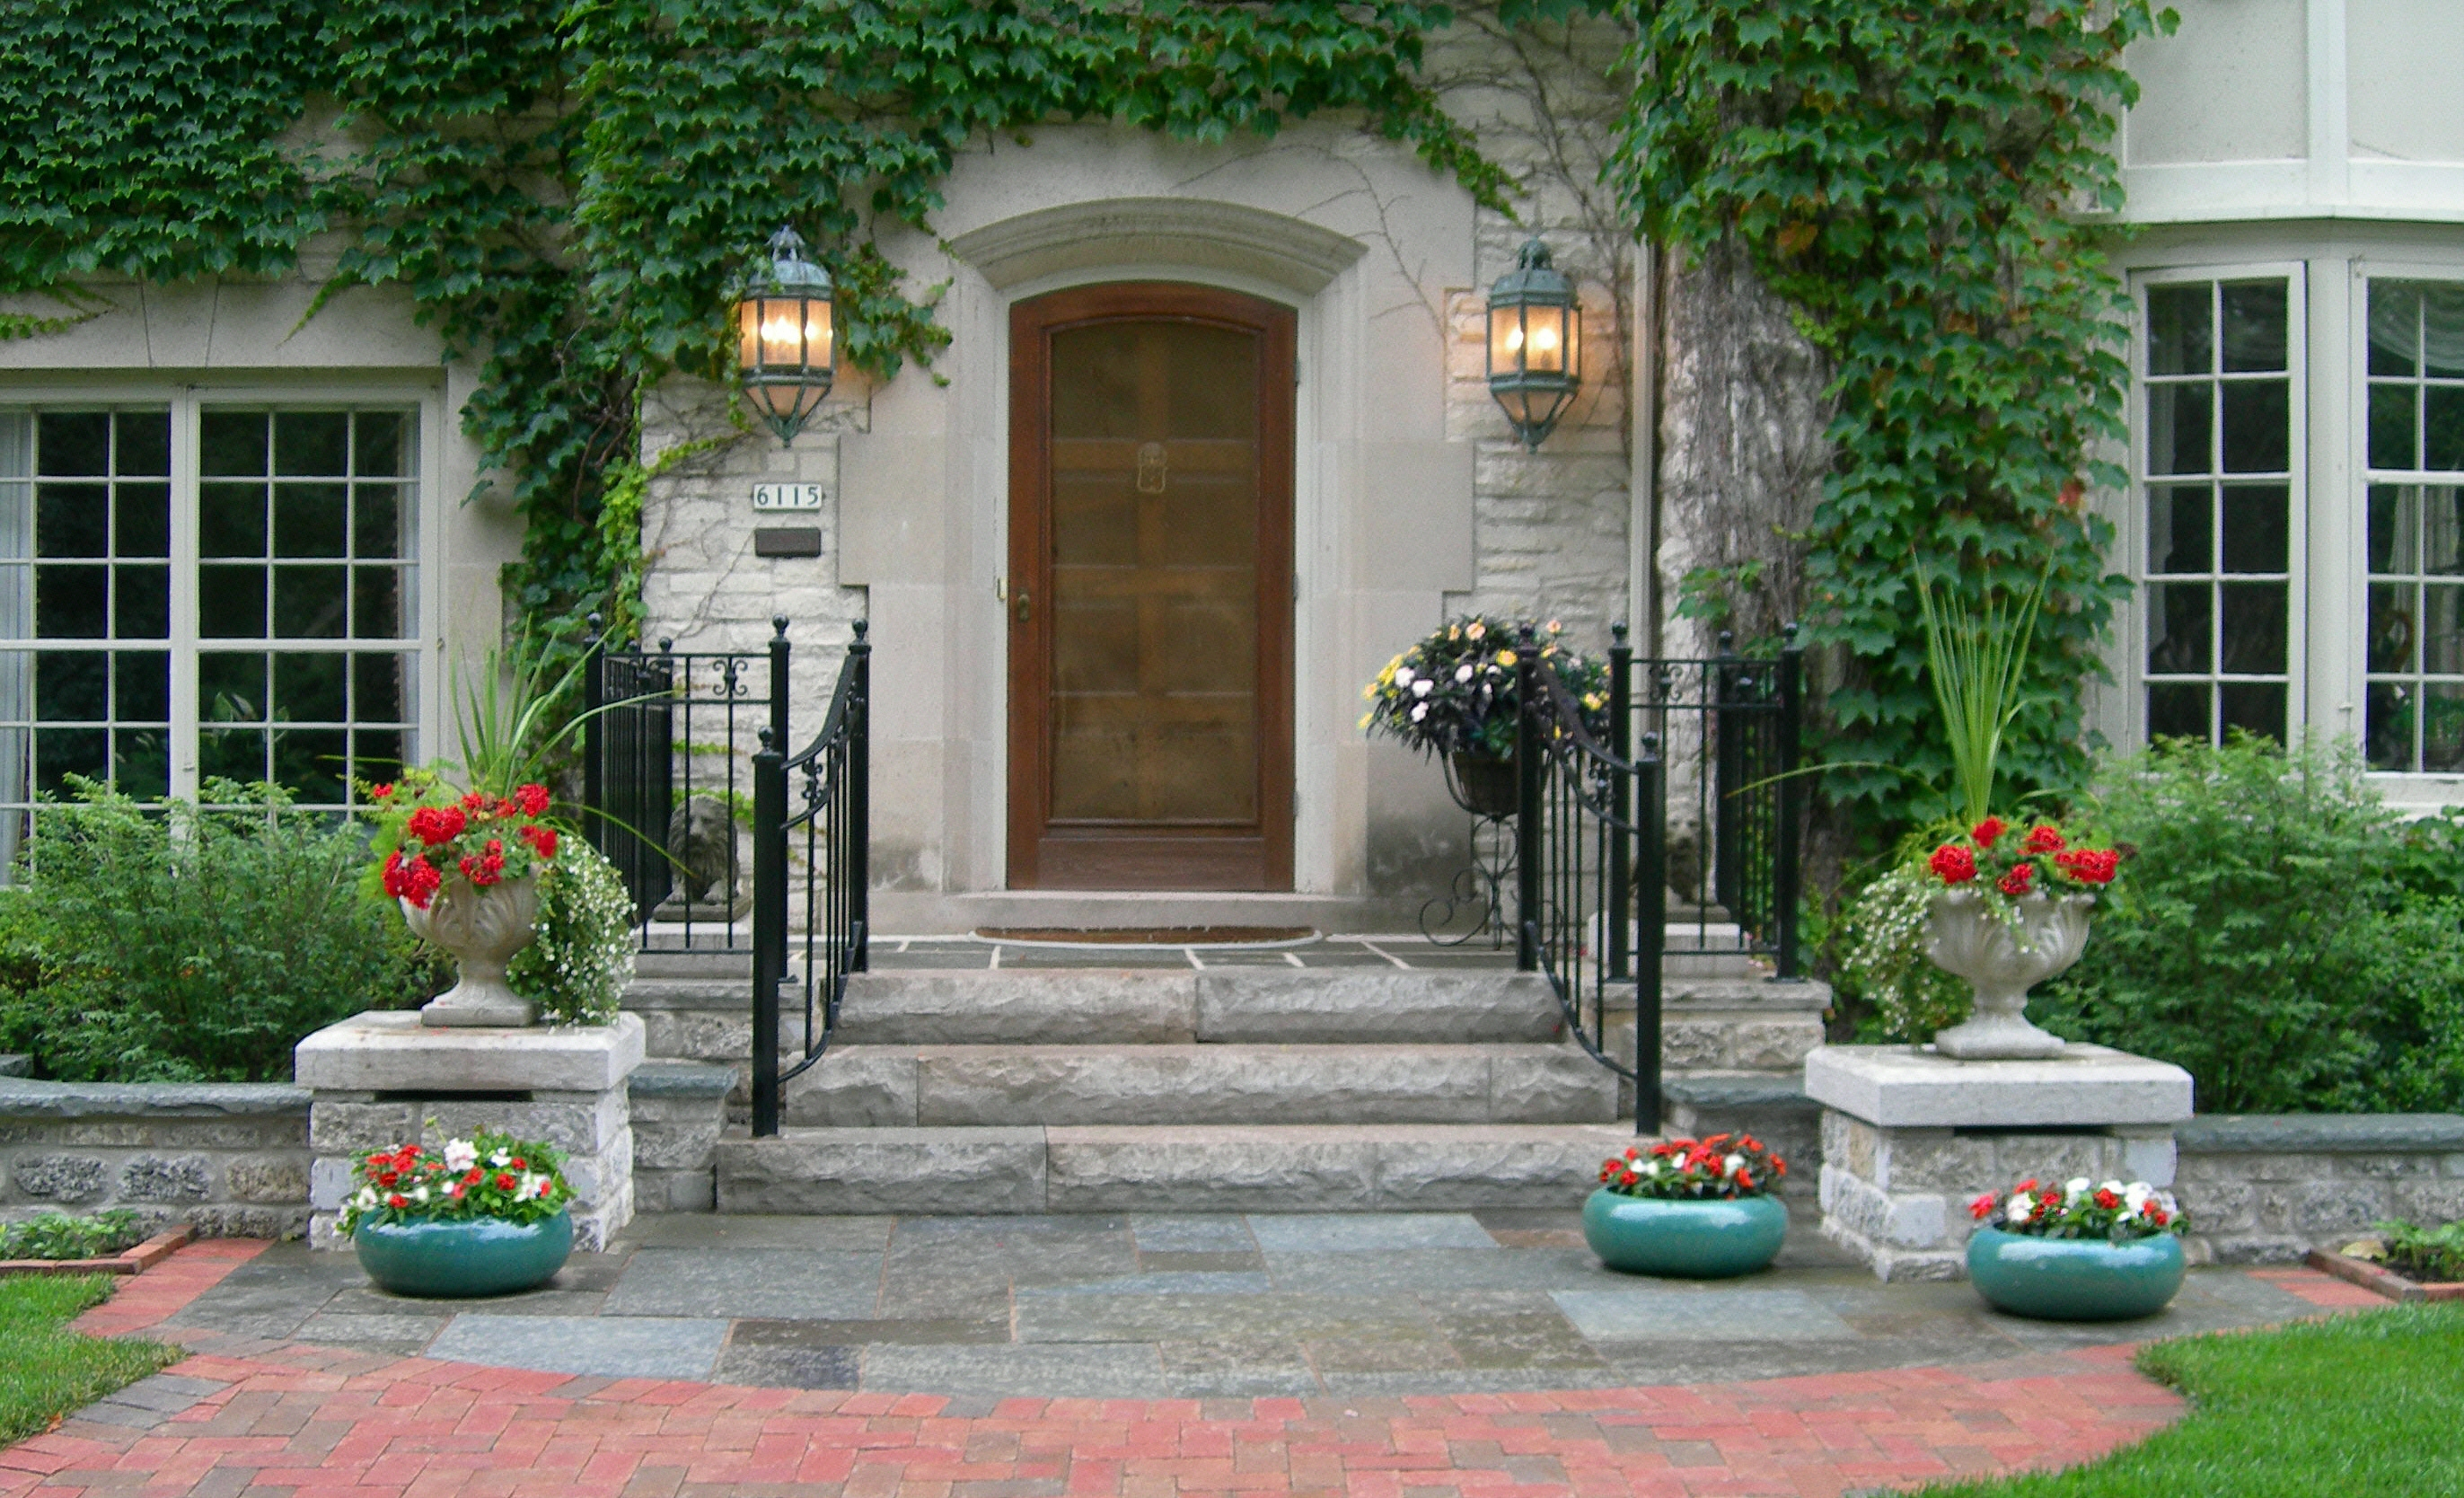 Creating an Enchanting Front Entry with Architectural Details